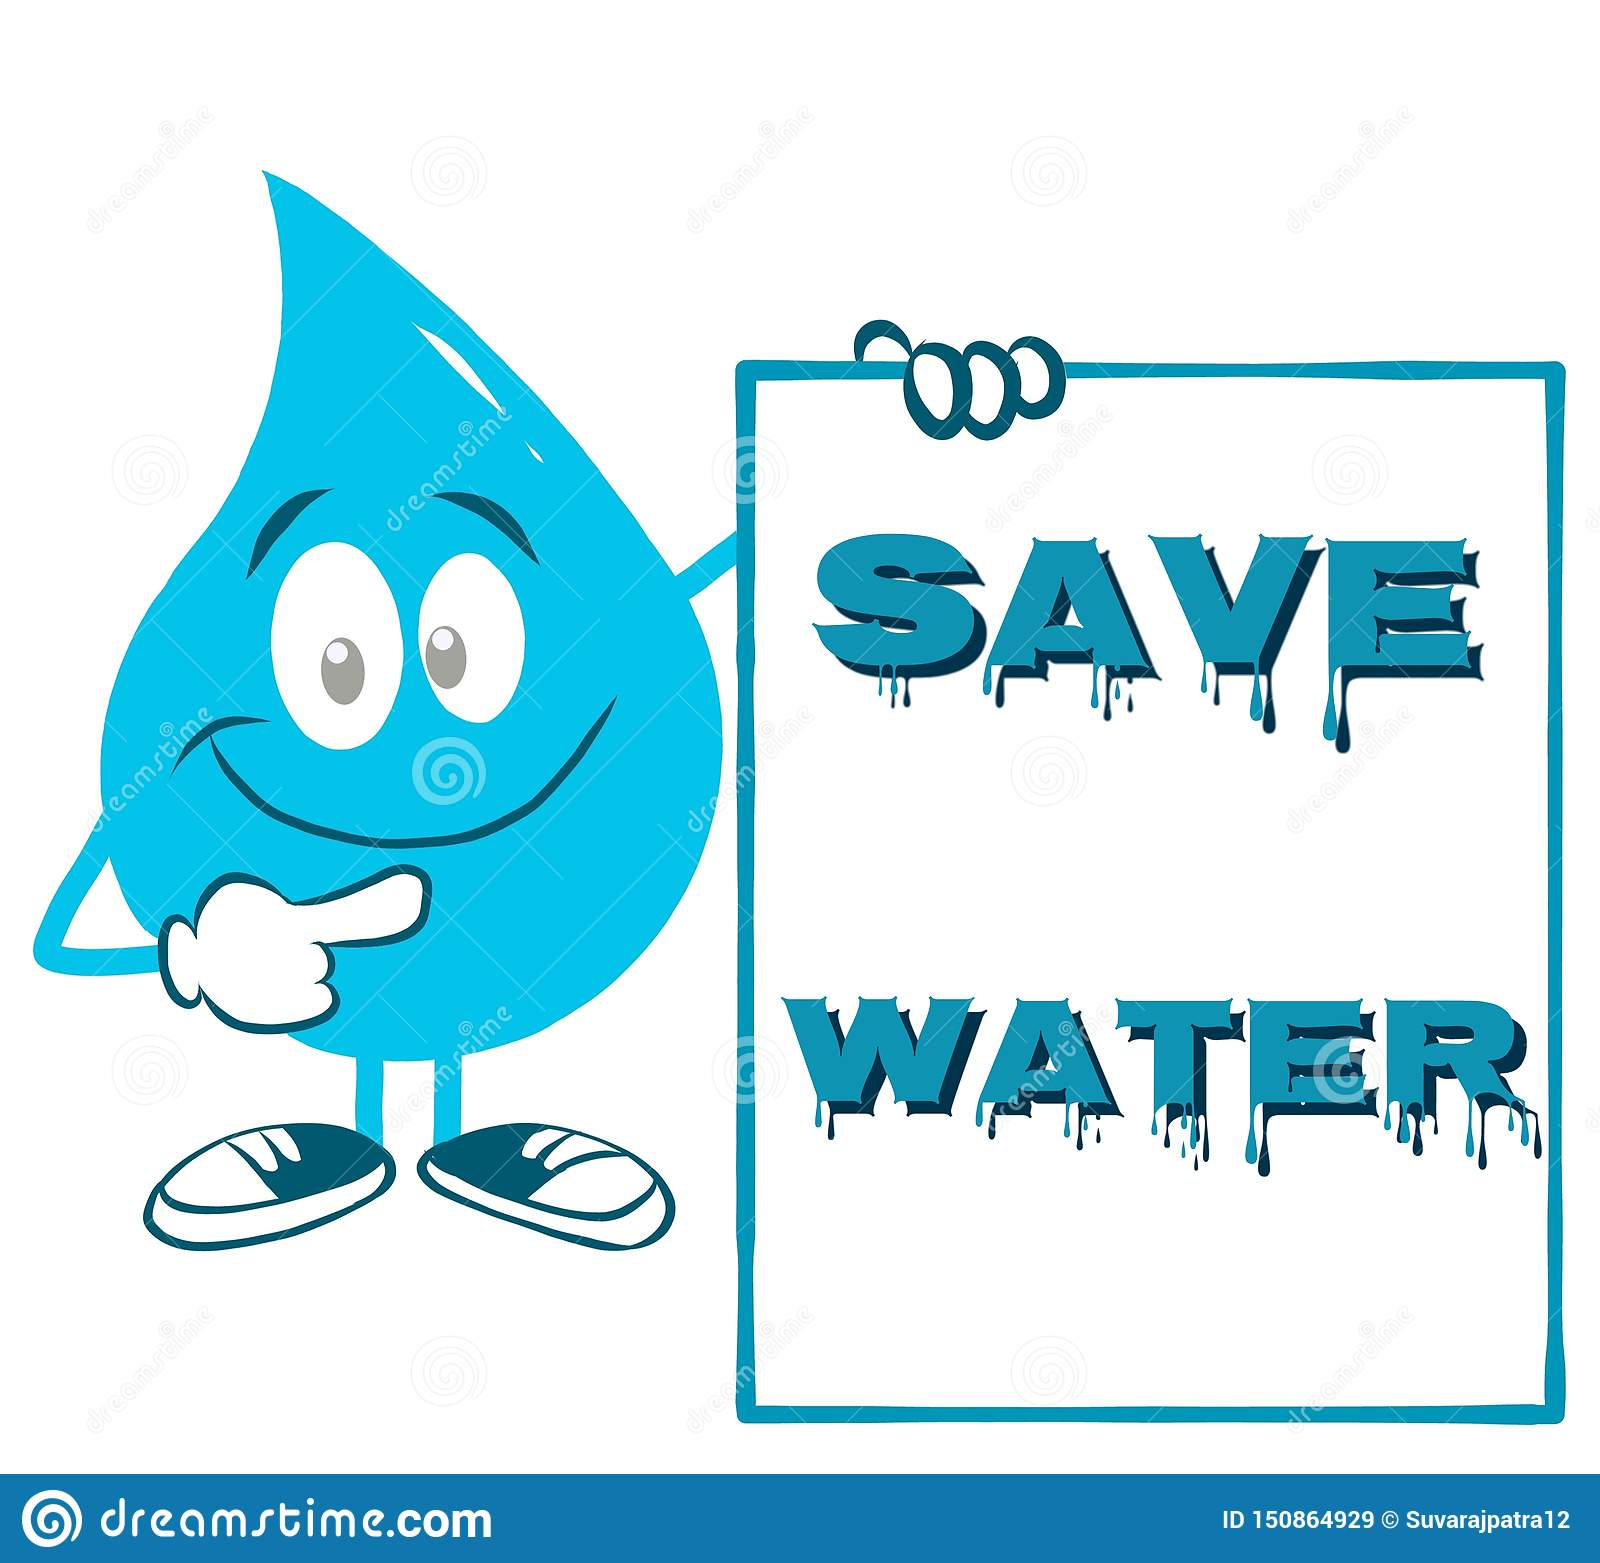 Poster for World Water Day